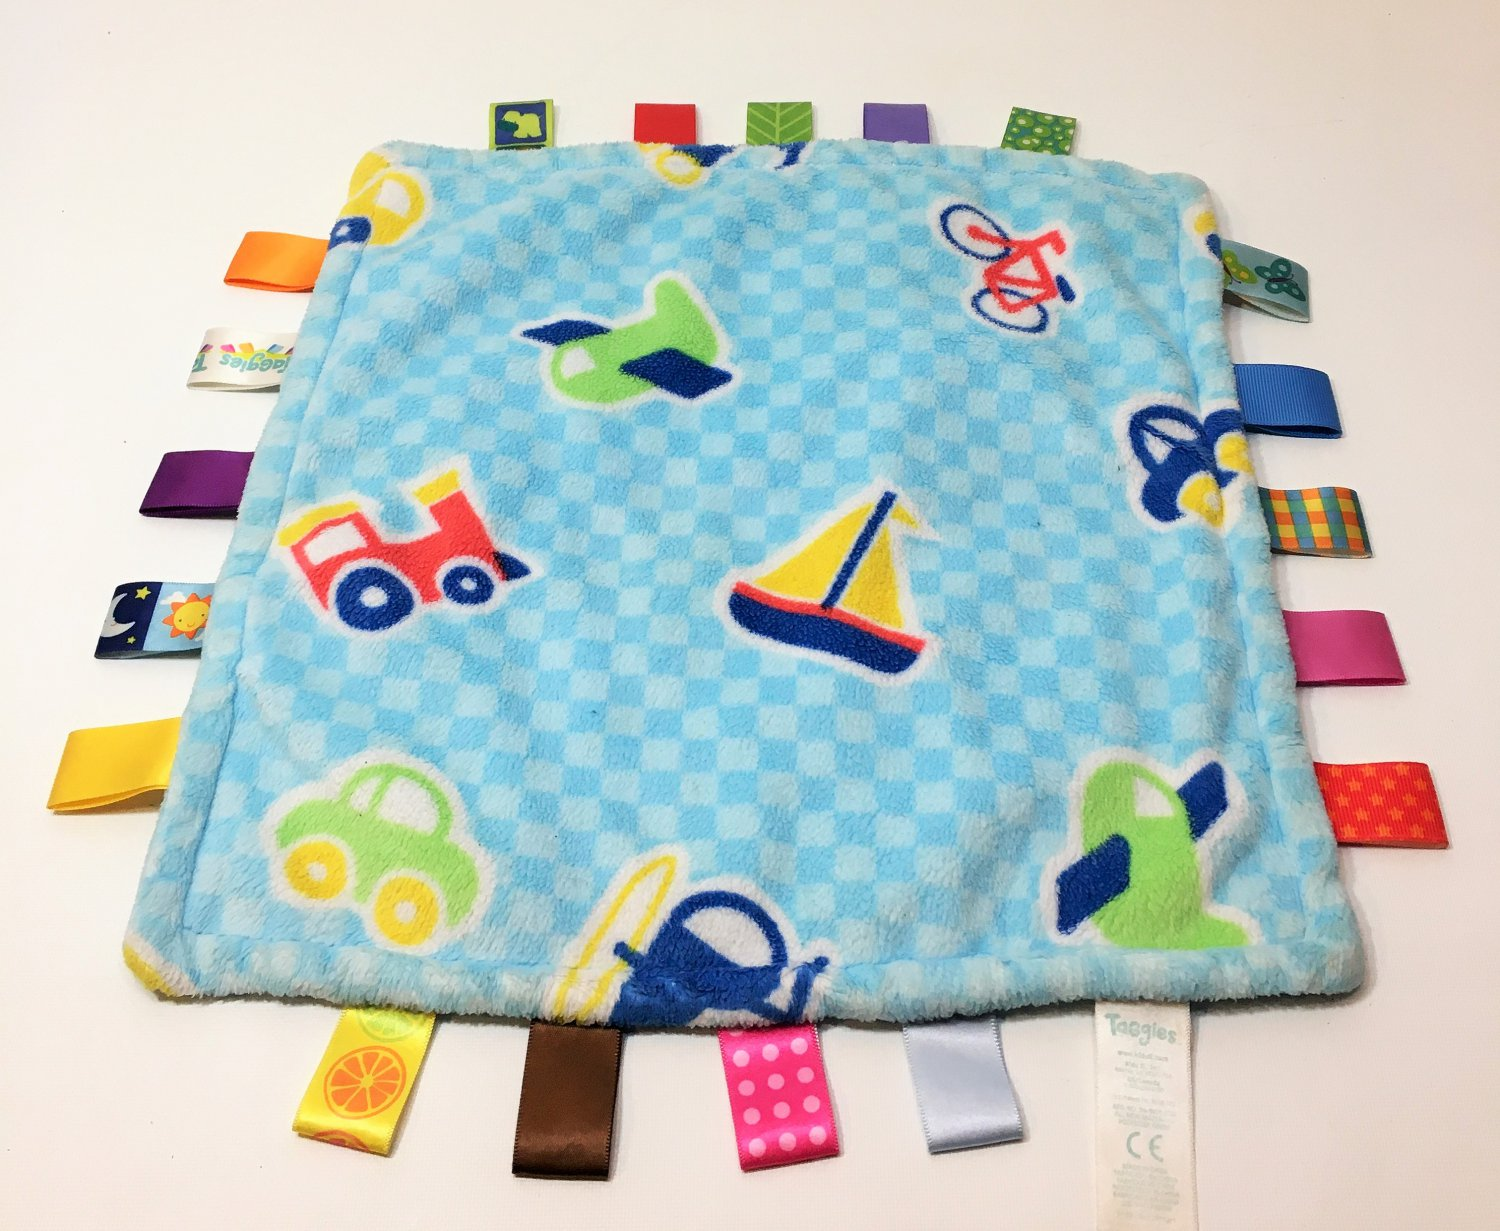 Taggies Baby Security Blanket Airplane Helicopter Car Bike Sailboat Satin Tags